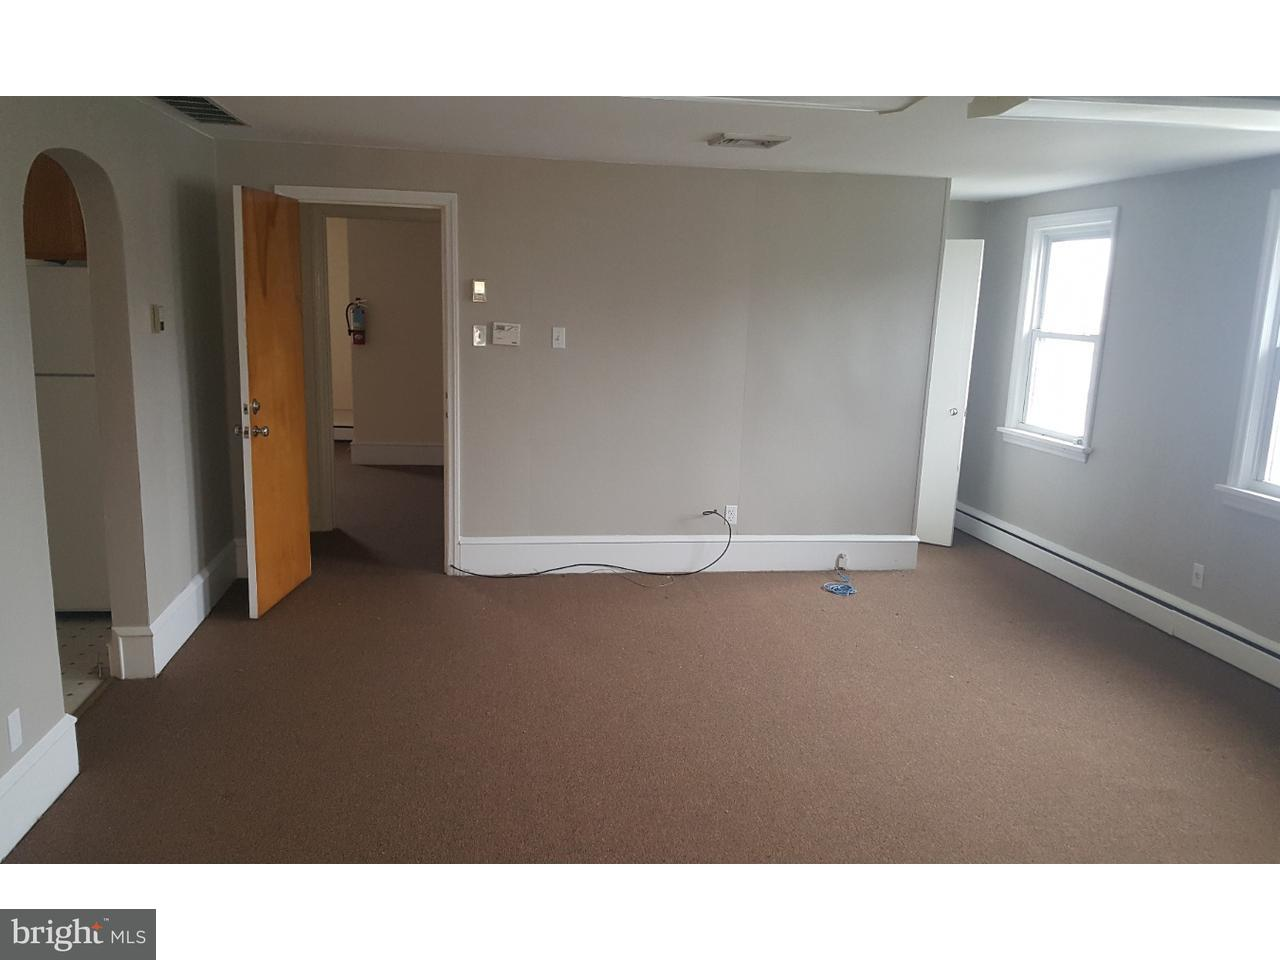 Single Family Home for Rent at 121 N BLACK HORSE PIKE Mount Ephraim, New Jersey 08059 United States